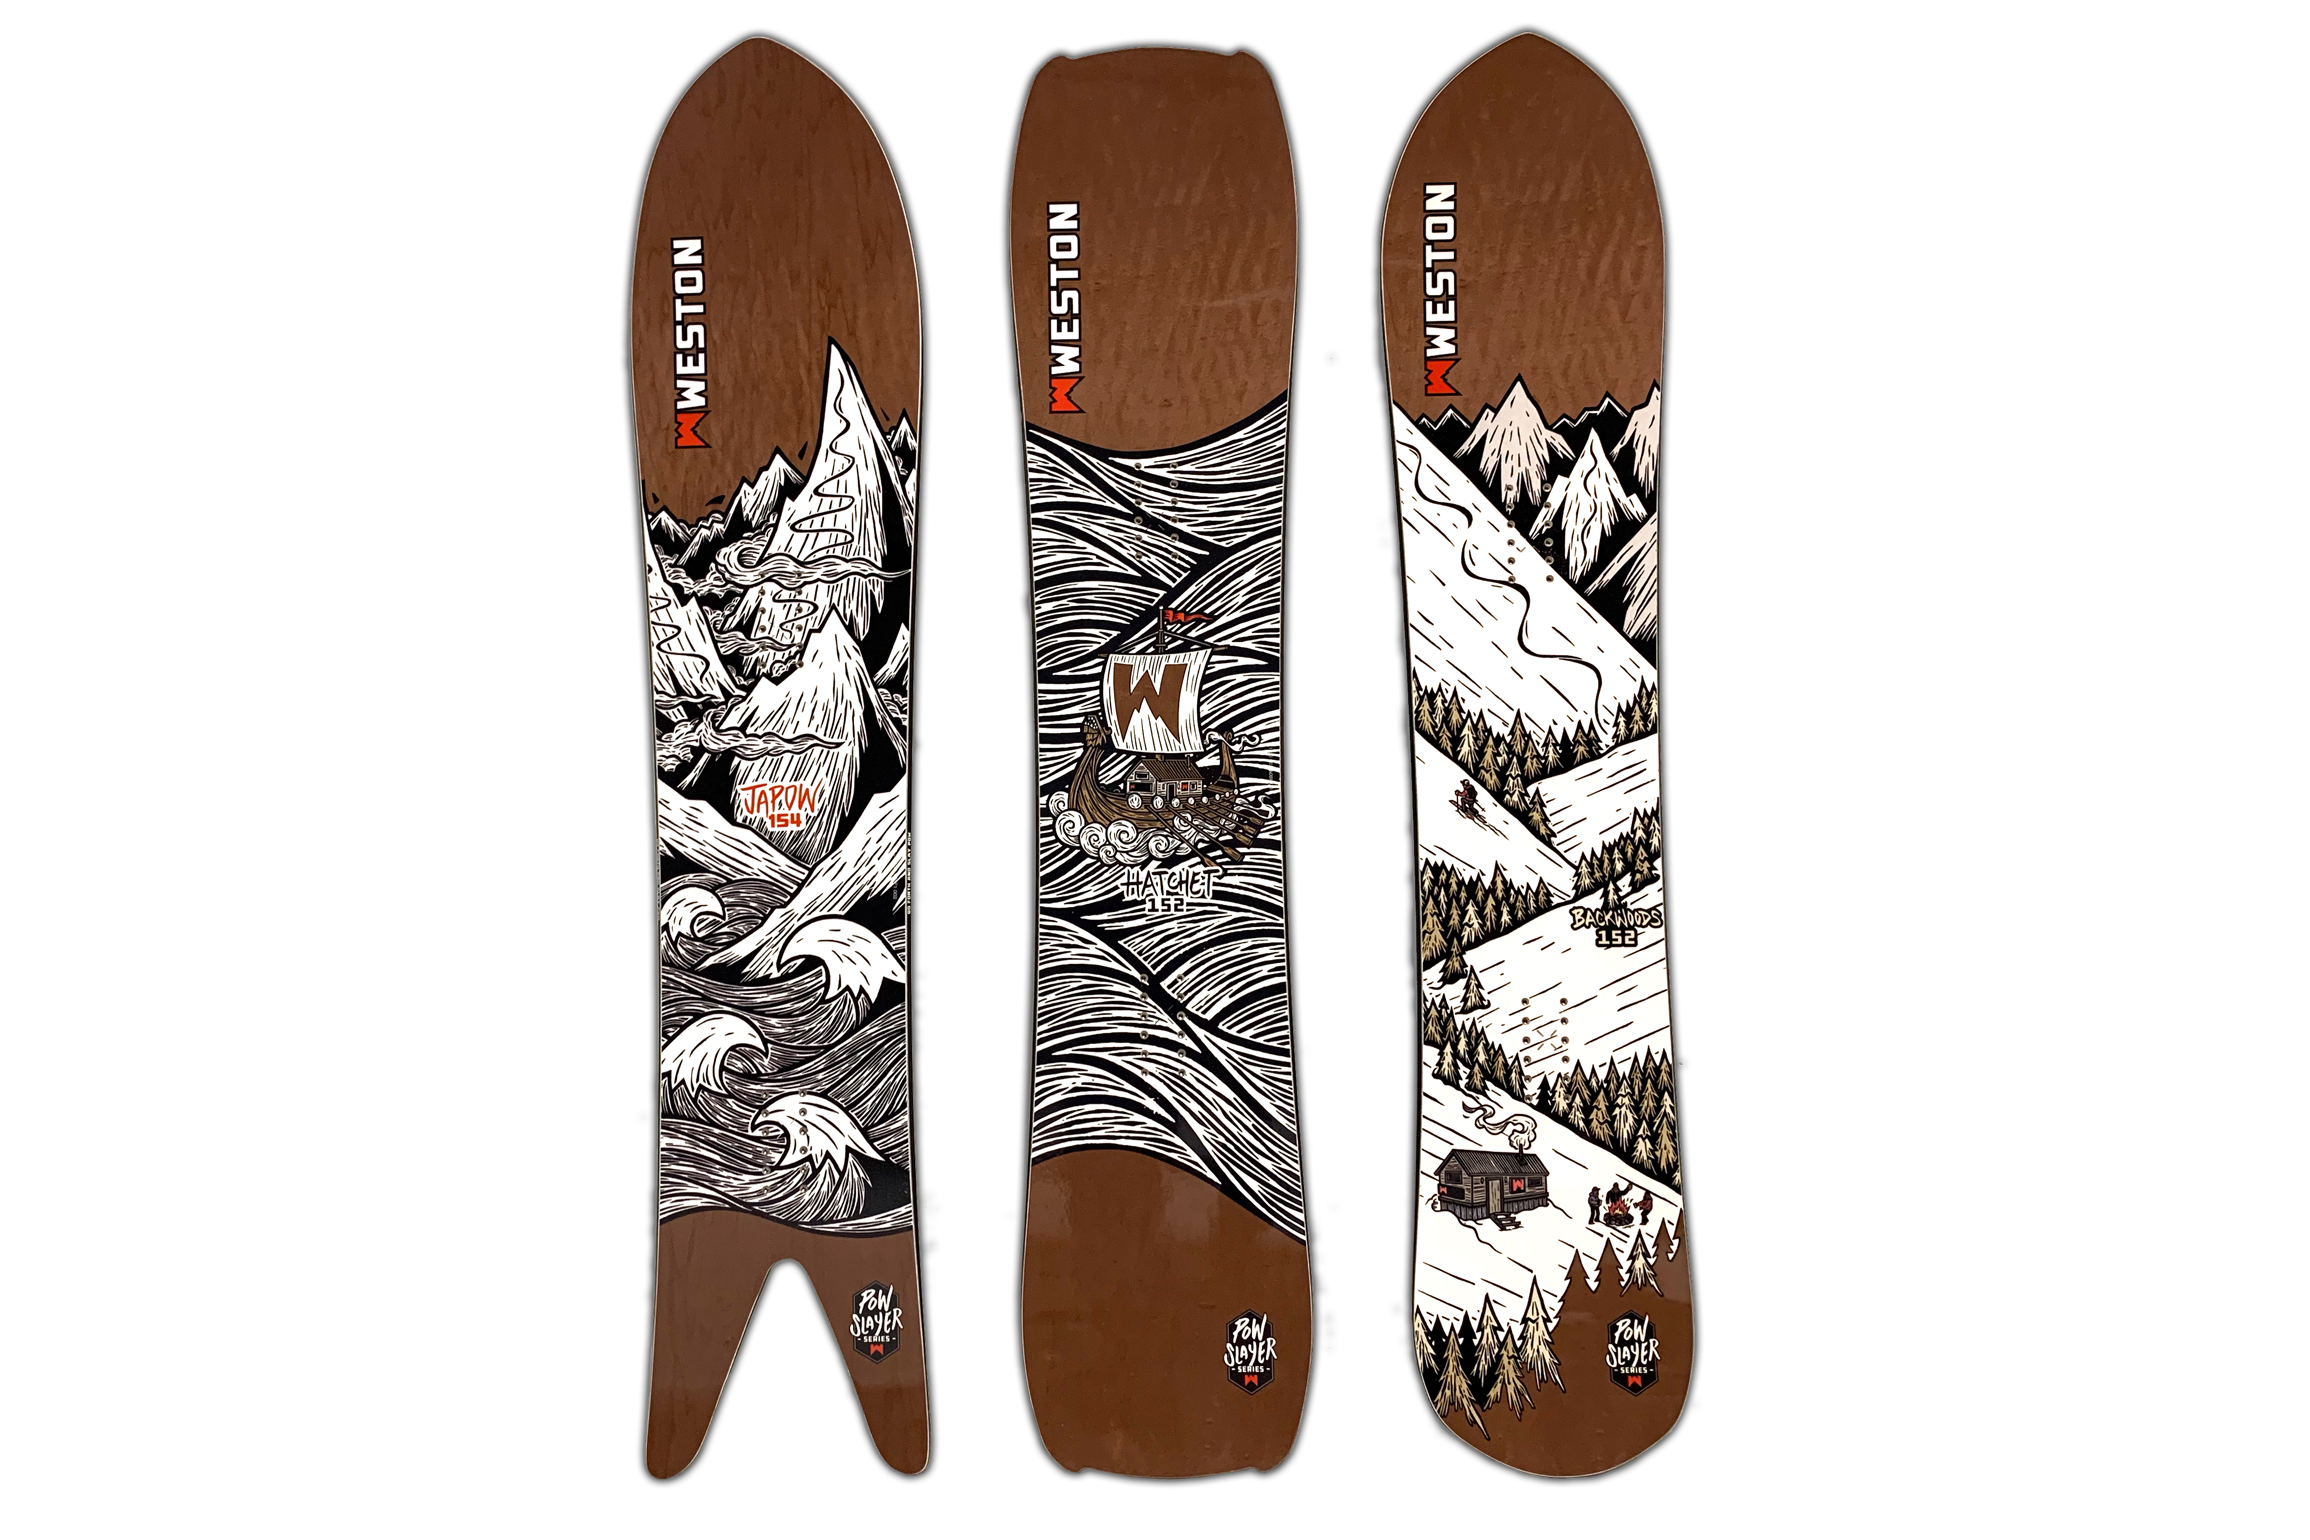 Weston POW Slayer snowboard